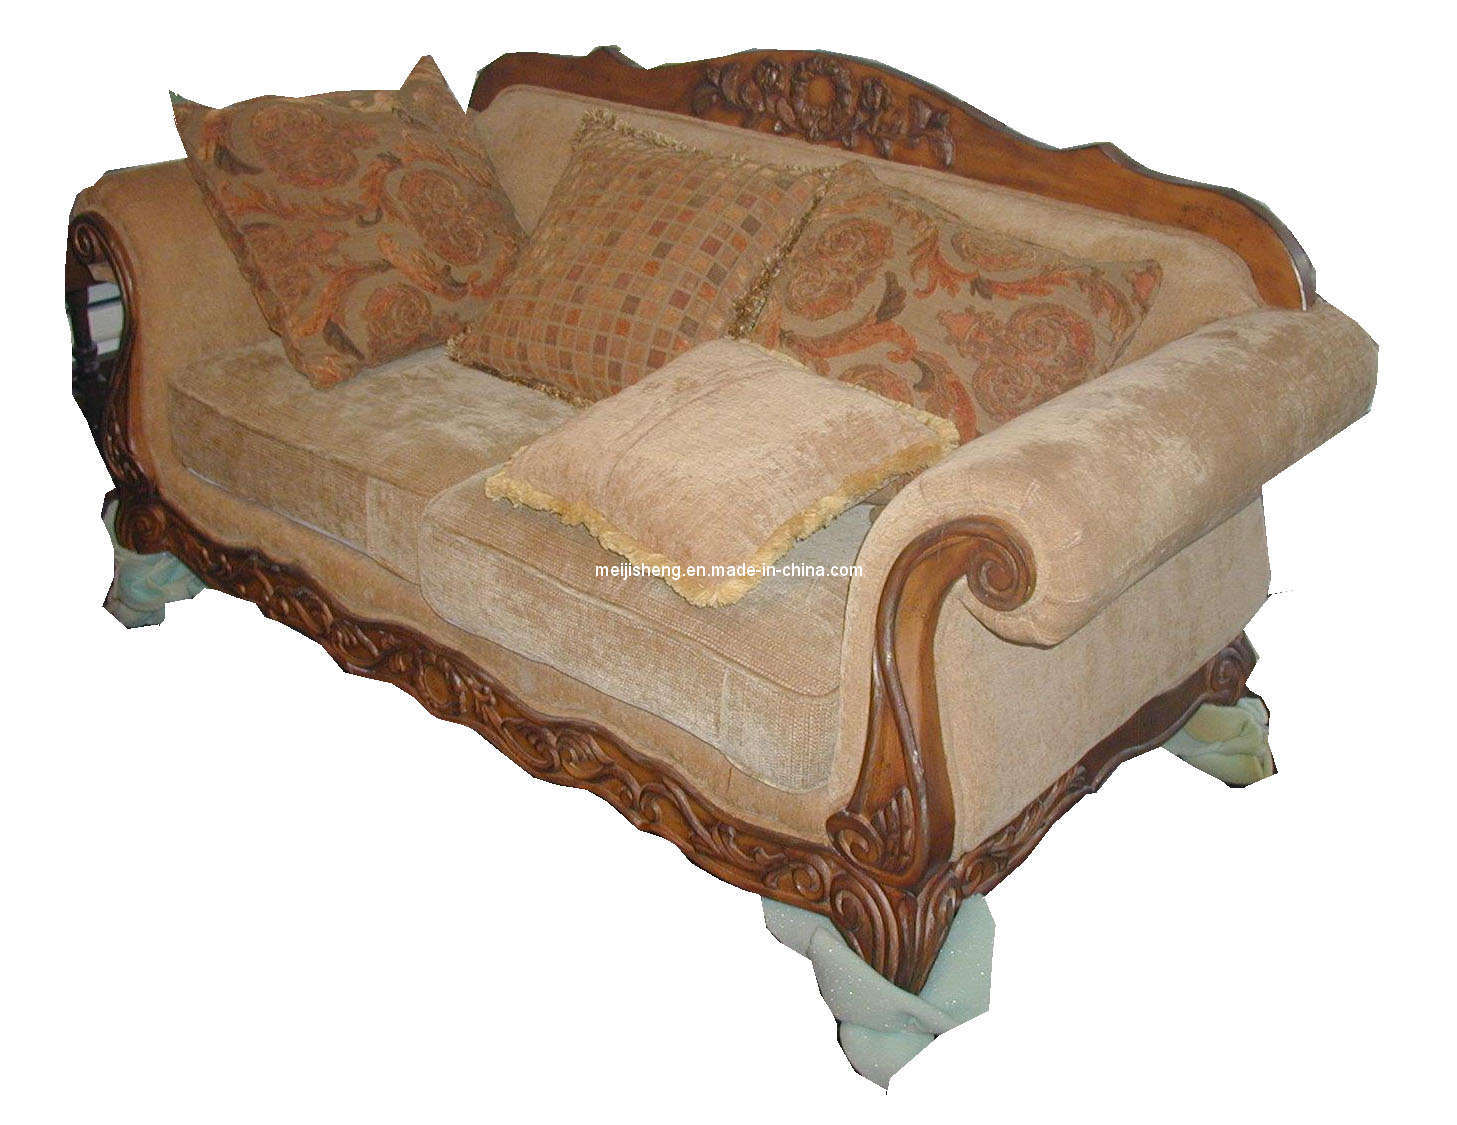 Wooden sofa chair with cushions